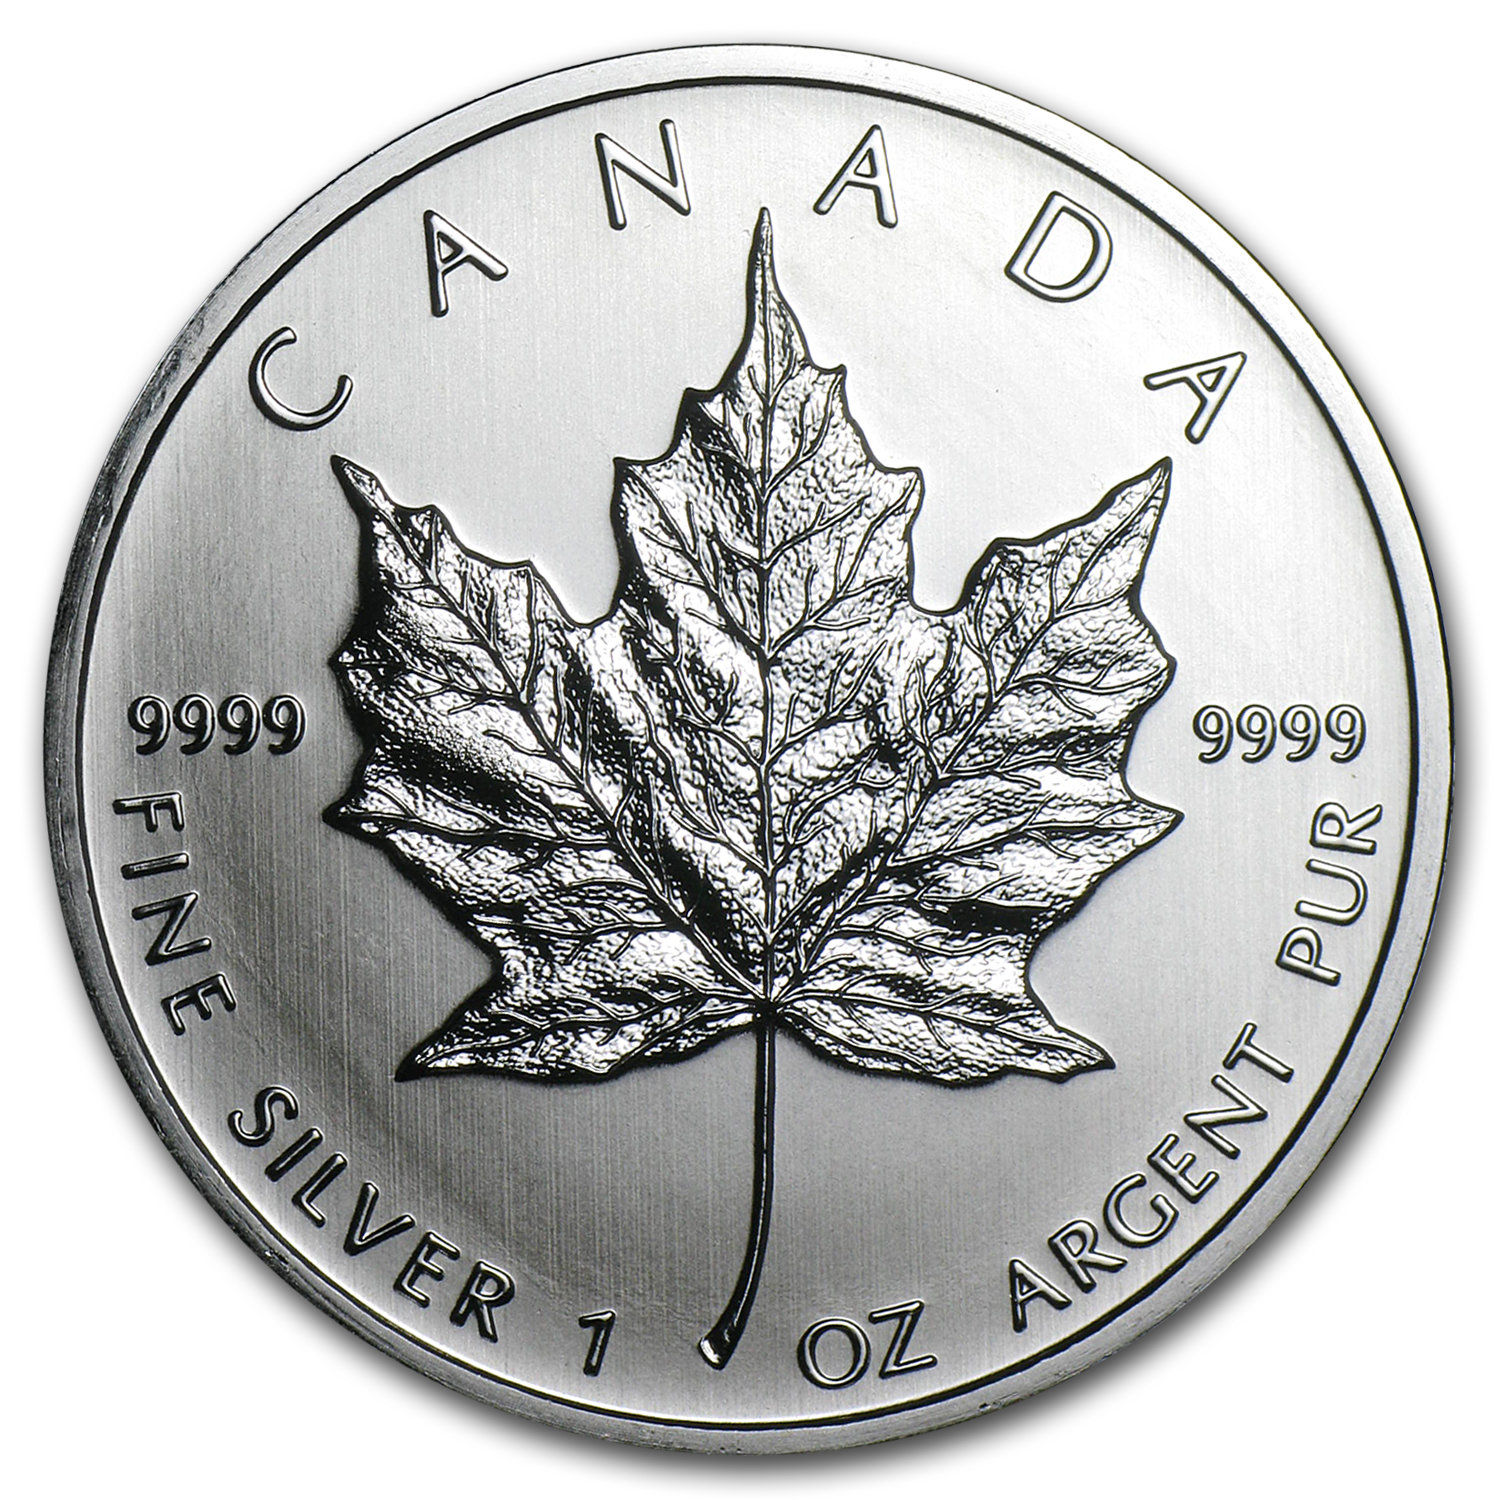 2011 Canada 1 oz Silver Maple Leaf BU